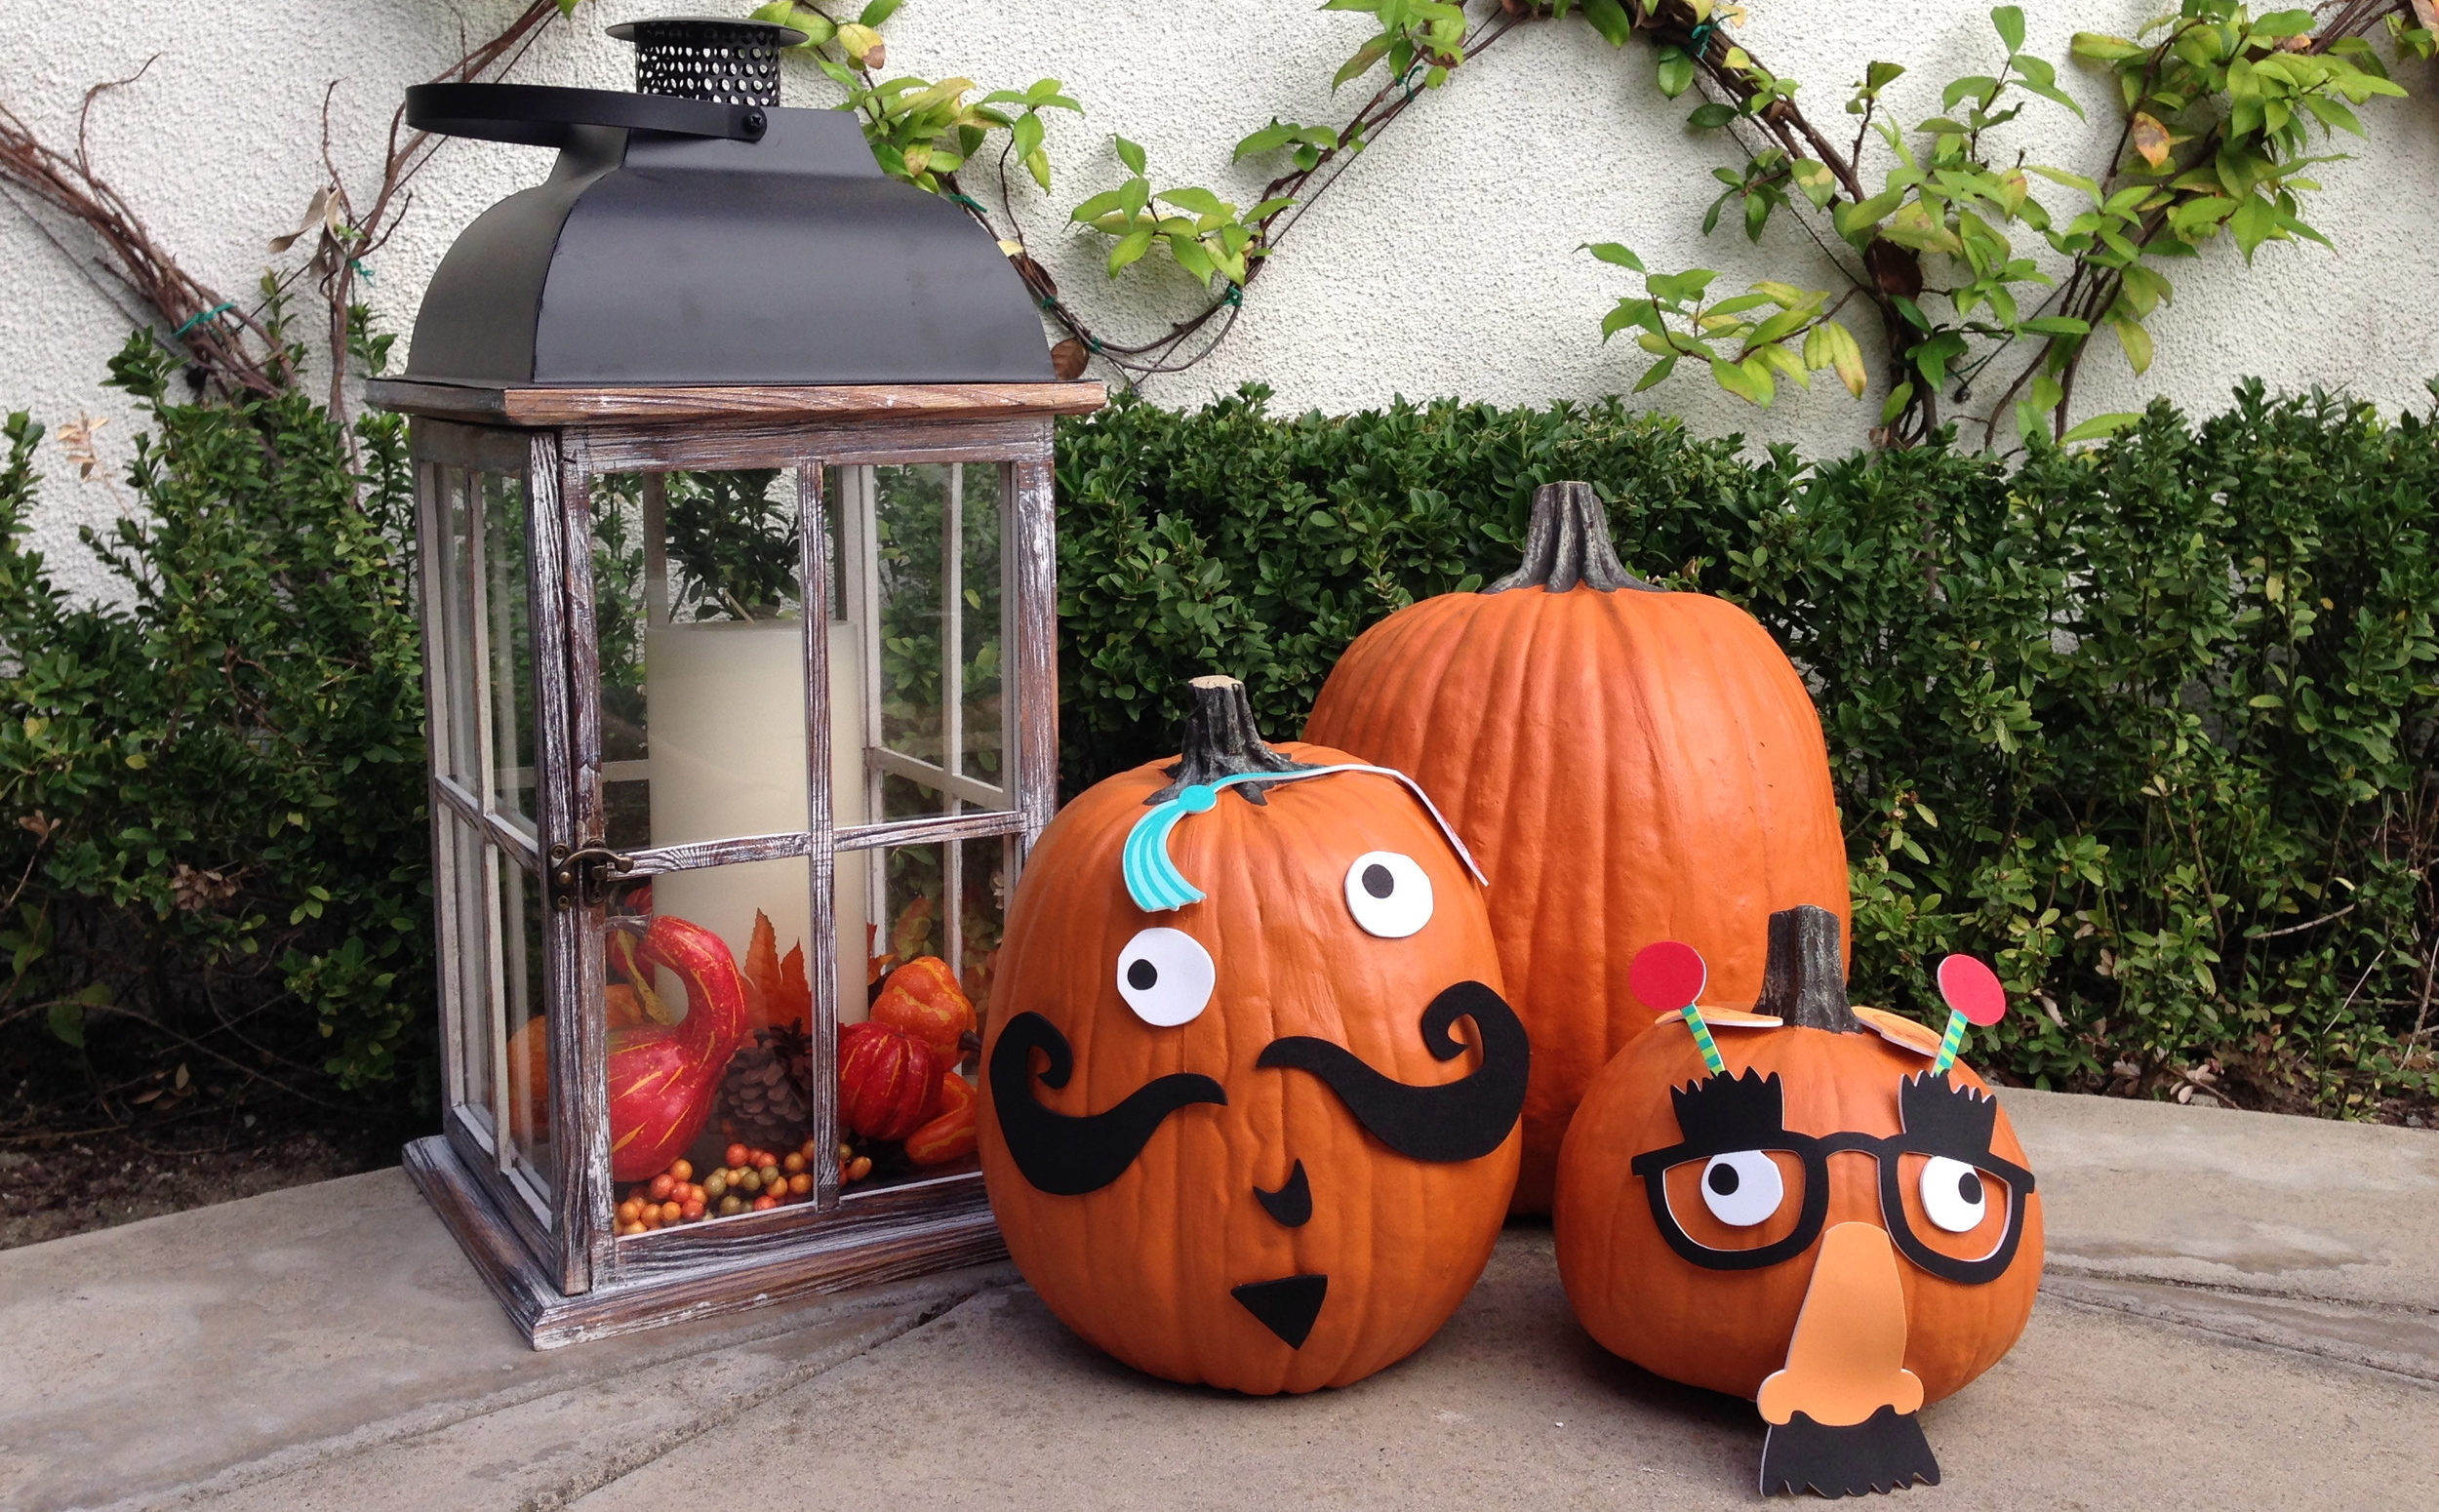 mambi pumpkin decorating kit.  Available at Michaels Stores.  Makes pumpkin decorating easy for almost any age!